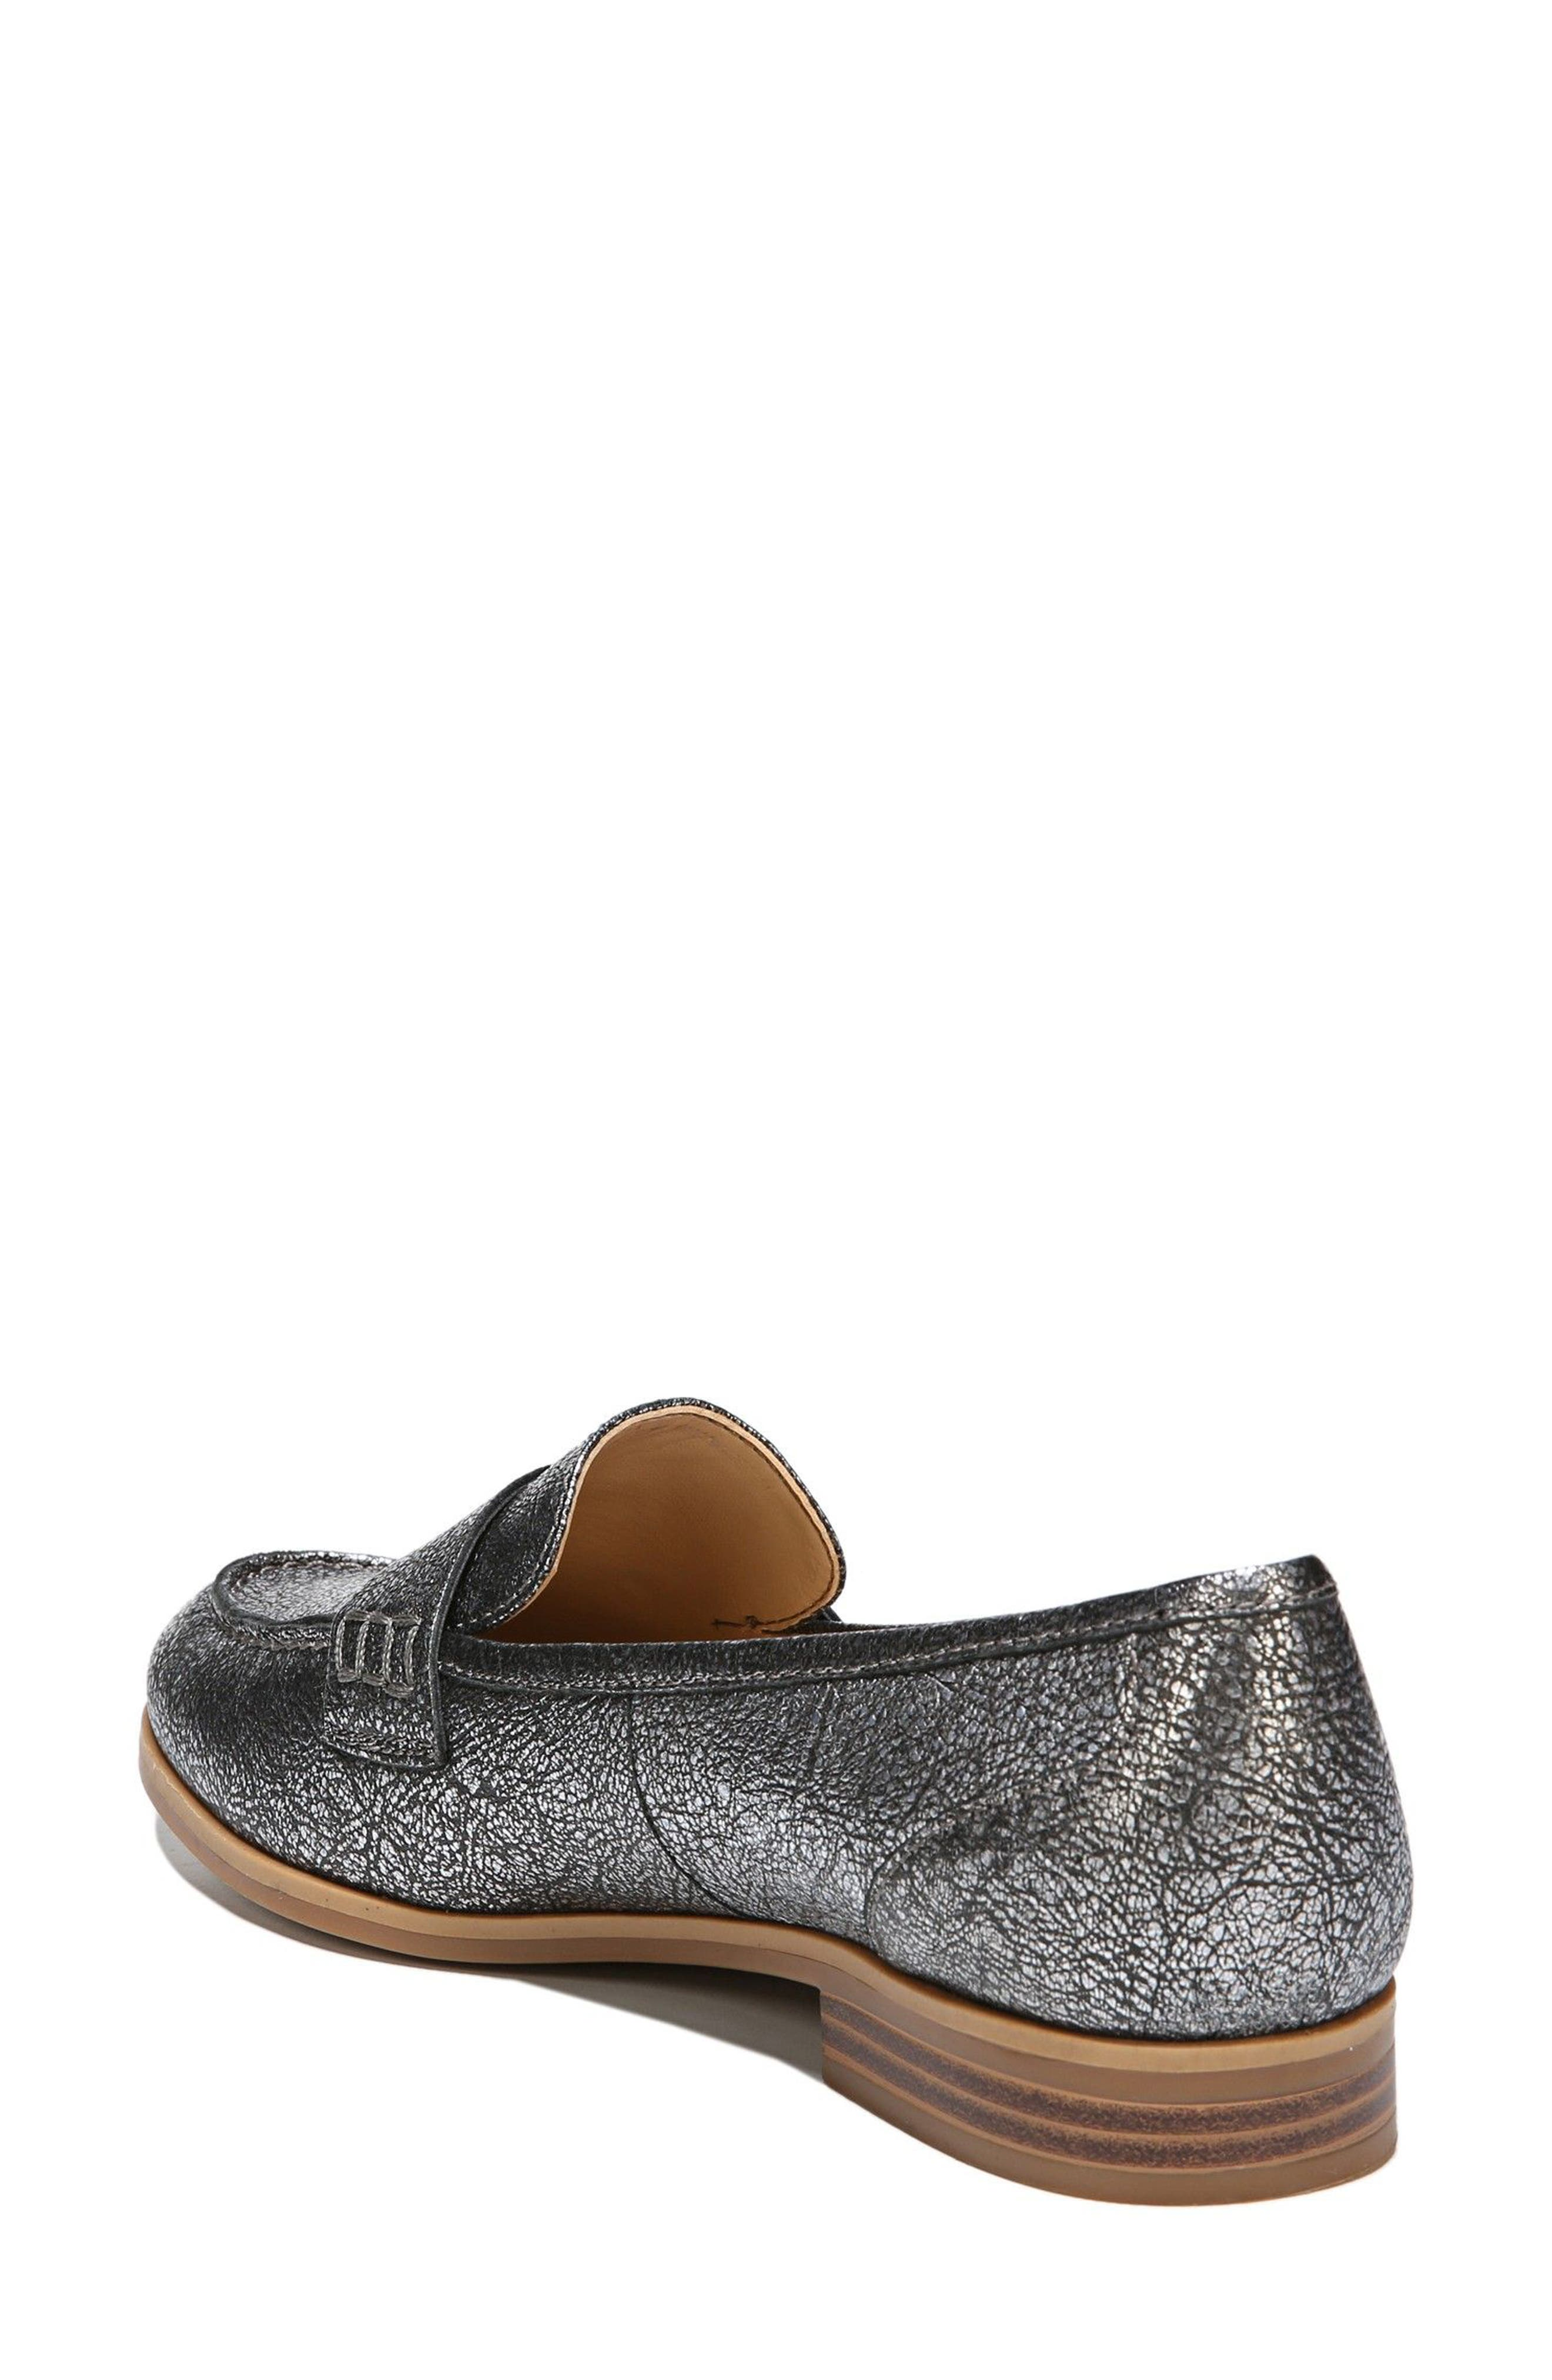 Veronica Loafer,                             Alternate thumbnail 2, color,                             Silver Leather